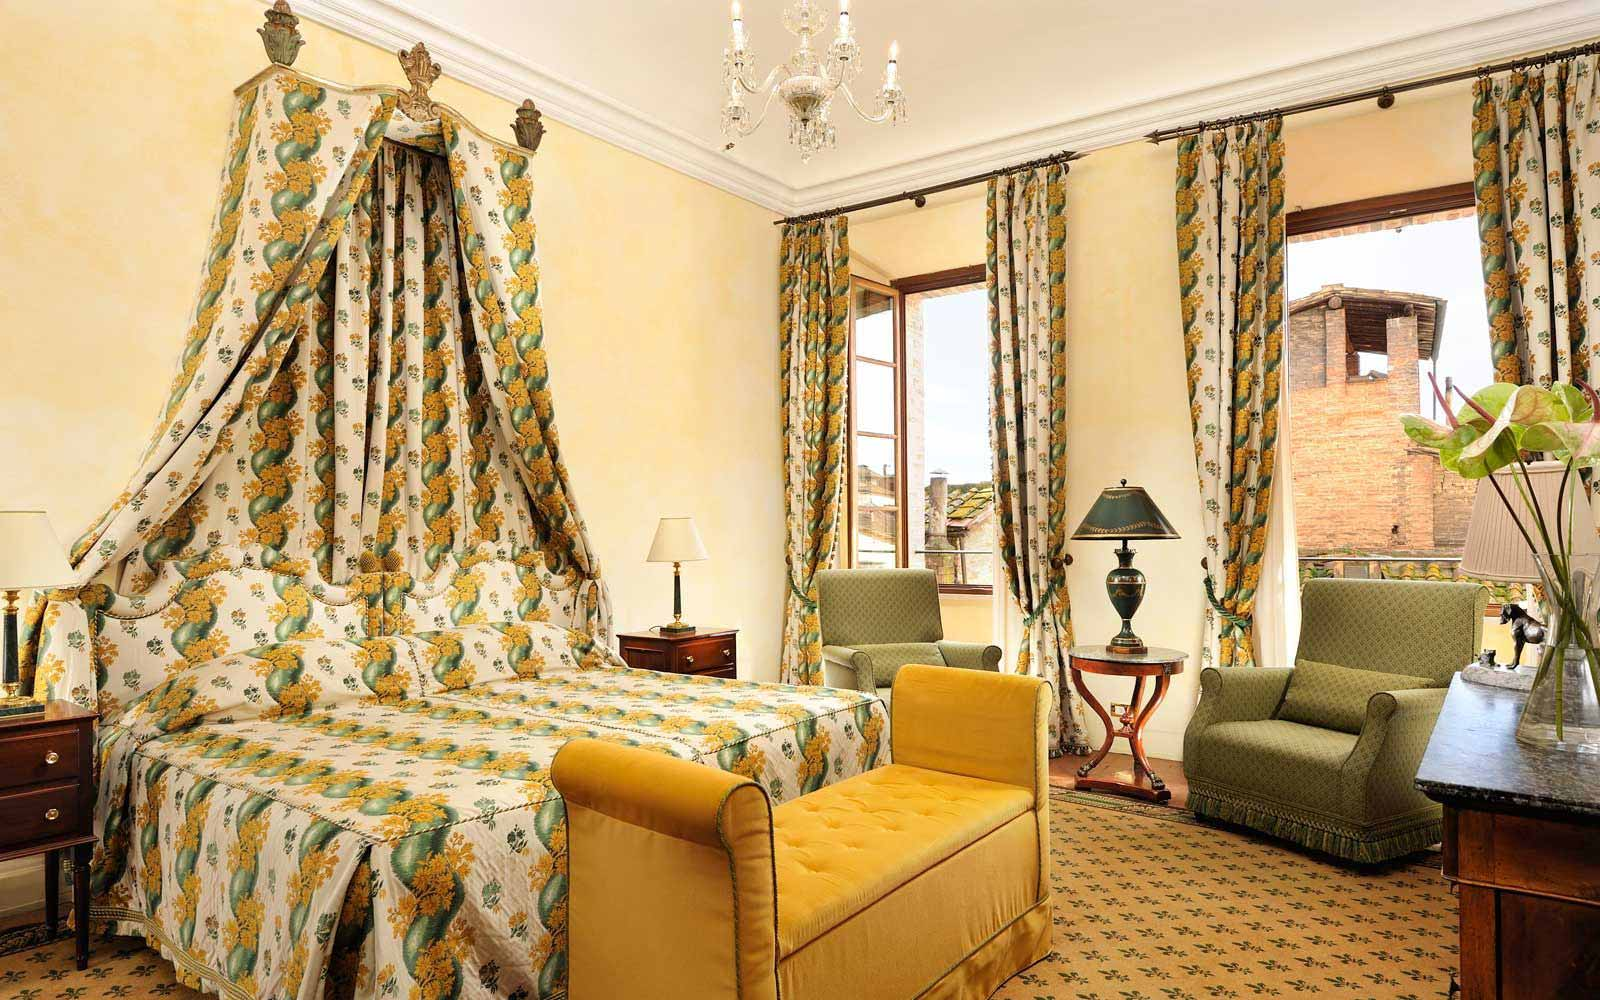 Deluxe Suite at the Grand Hotel Continental